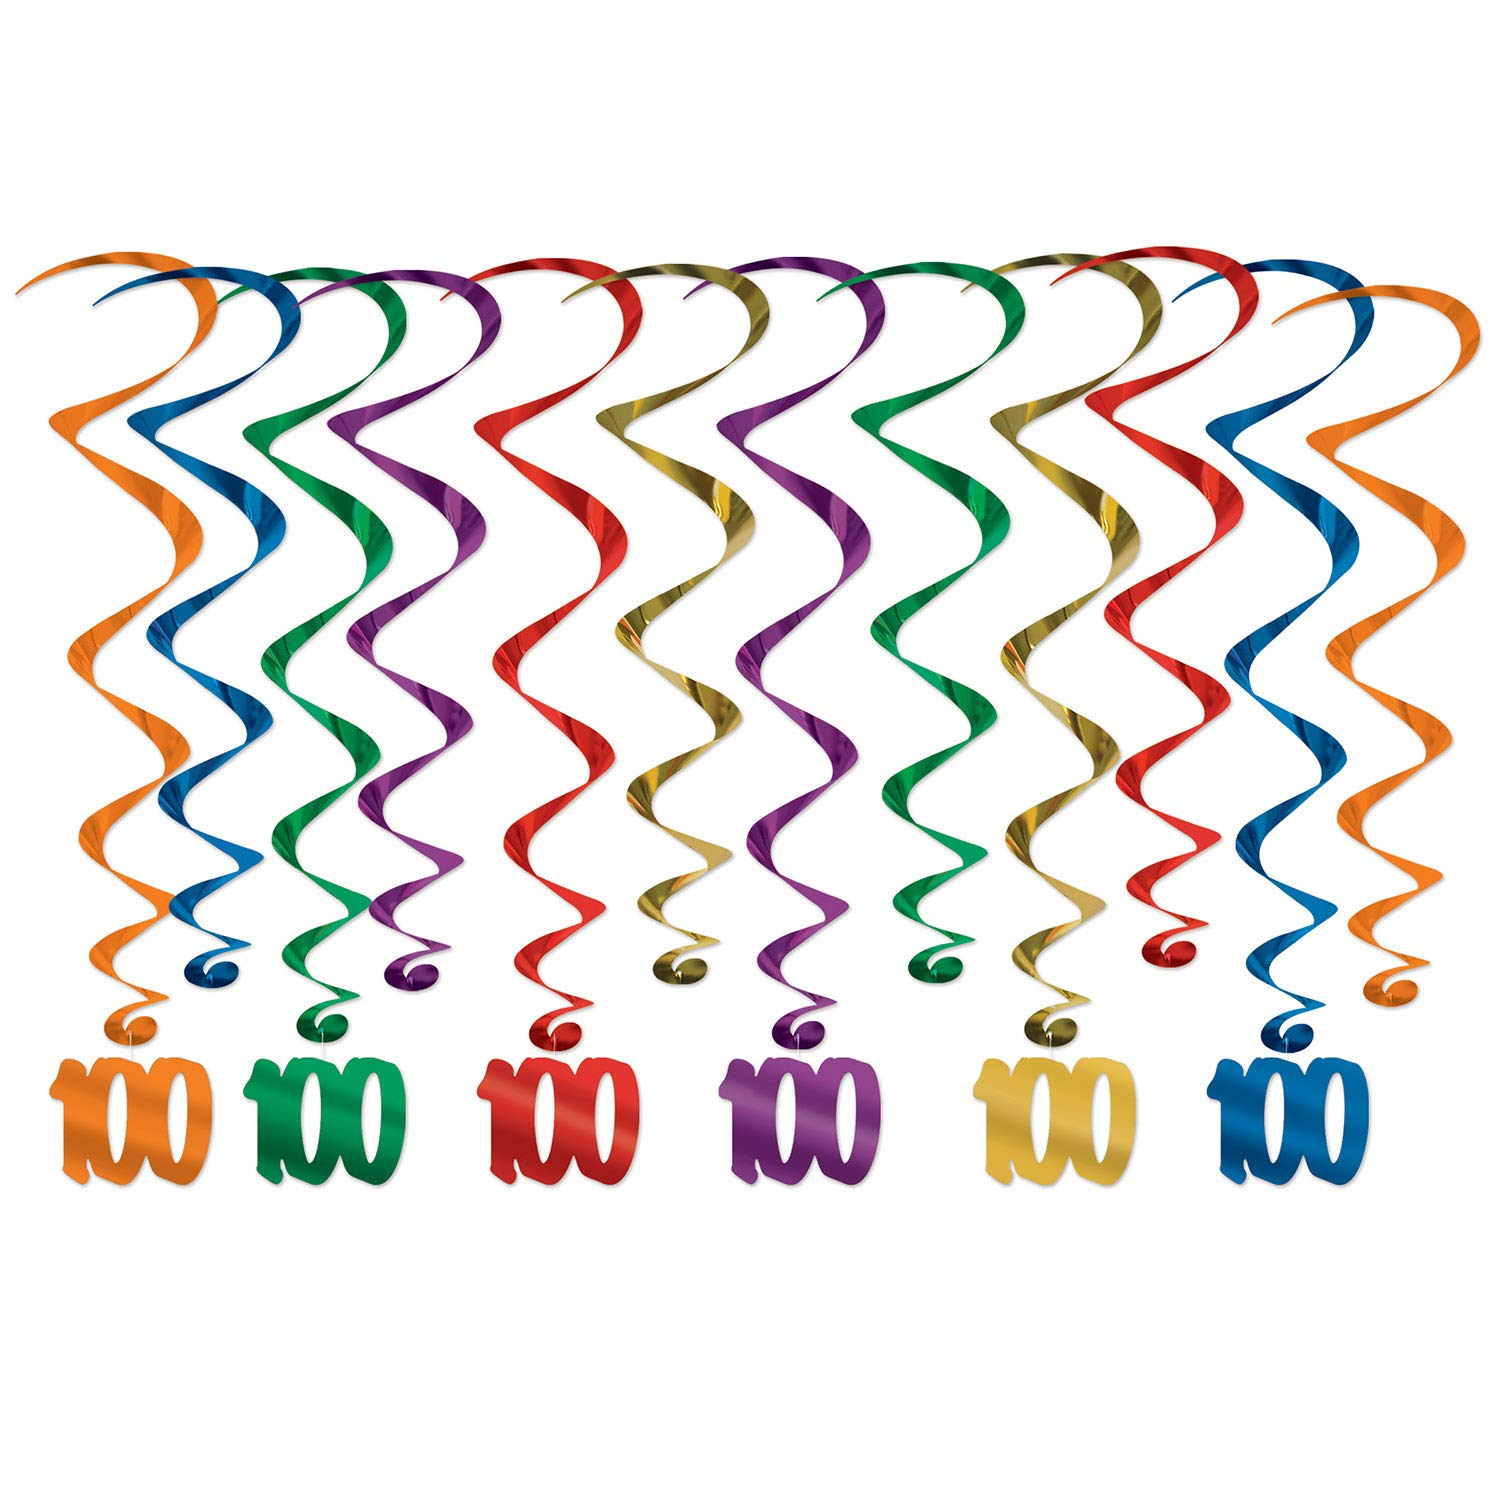 Beistle 100th Birthday Decorations Birthday Party Supplies, Assorted Metallic 100 Whirls 17.5 Inch to 32 Inch, Pack 72